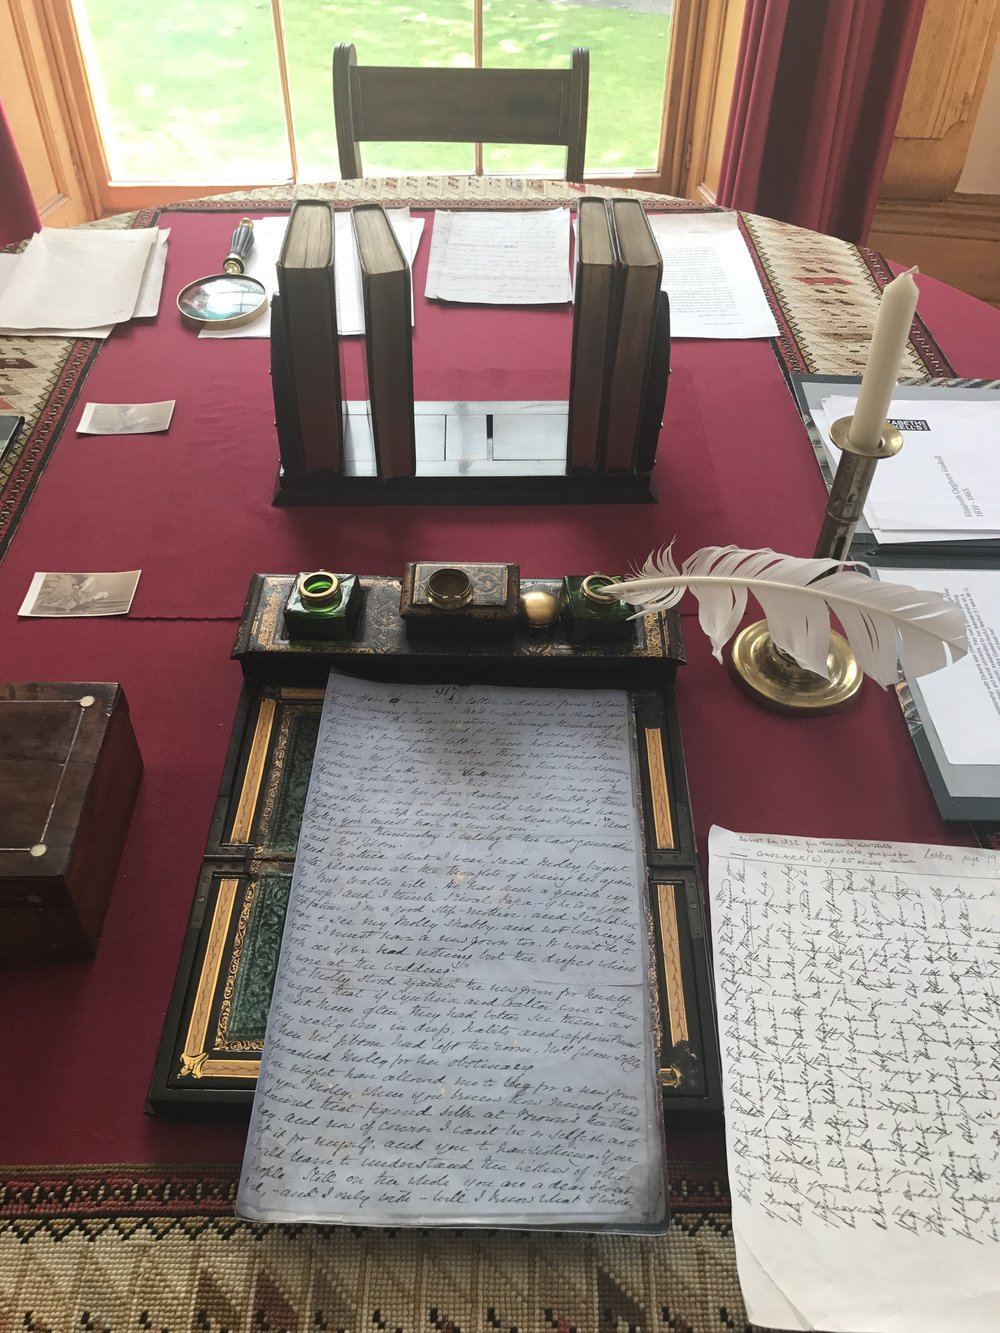 Elizabeth's writing desk, with copies of letters to Charlotte Bronte